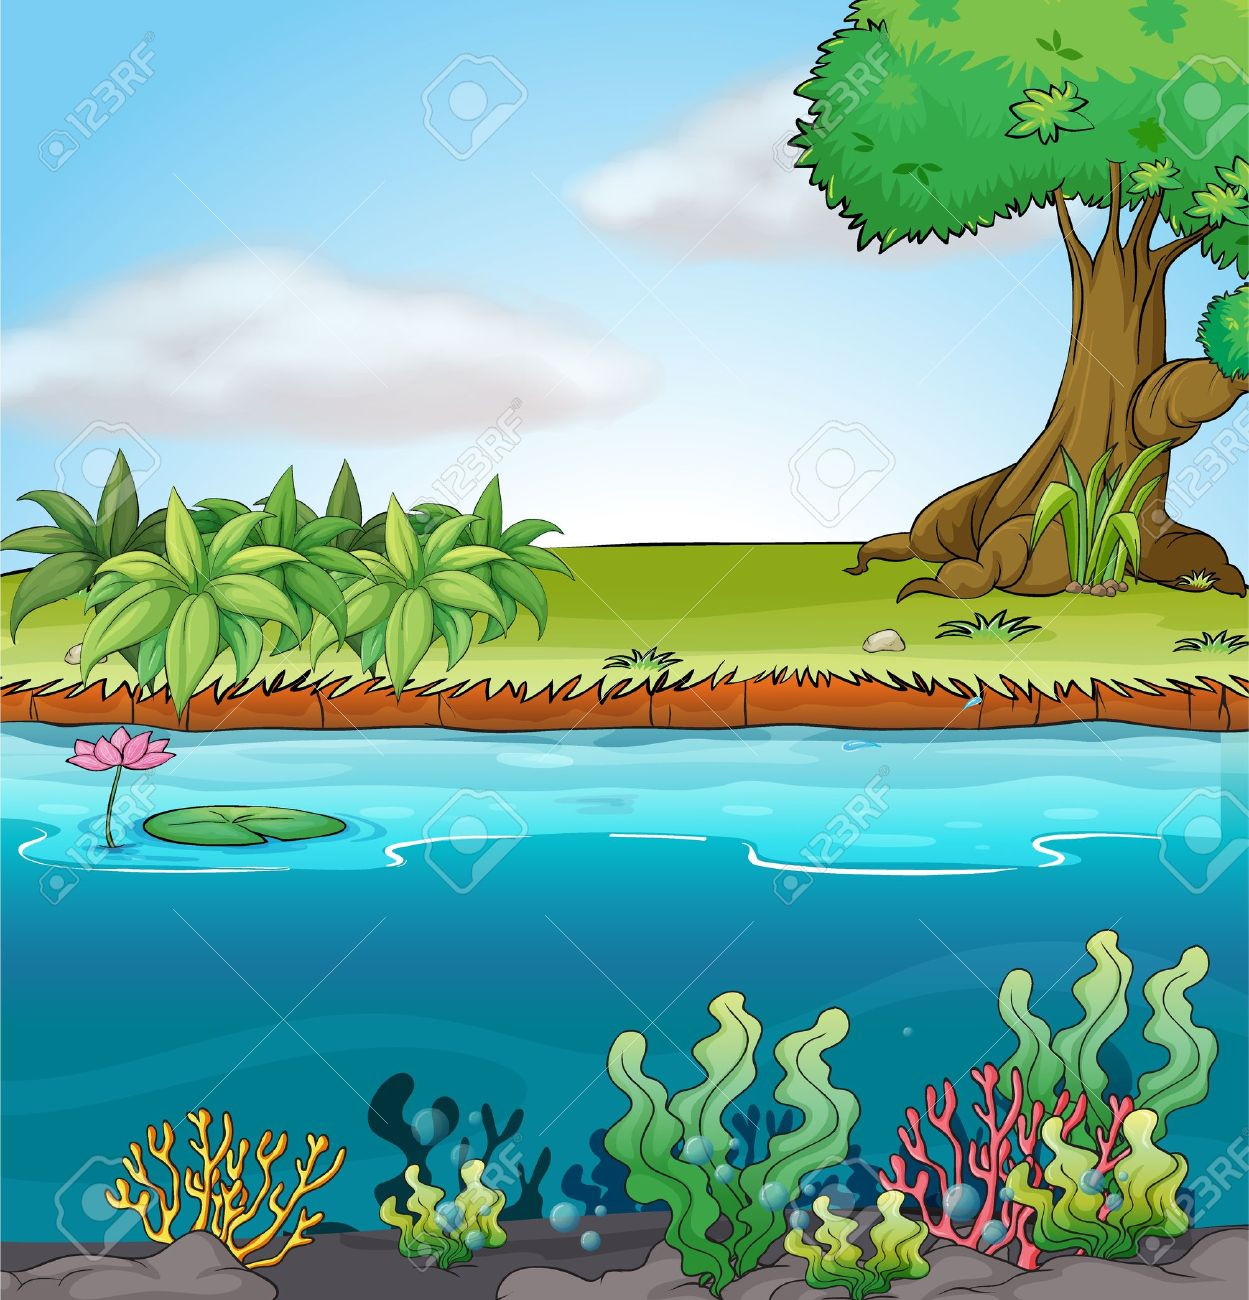 Illustration Of Land And Aquatic Environment In A Colorful.